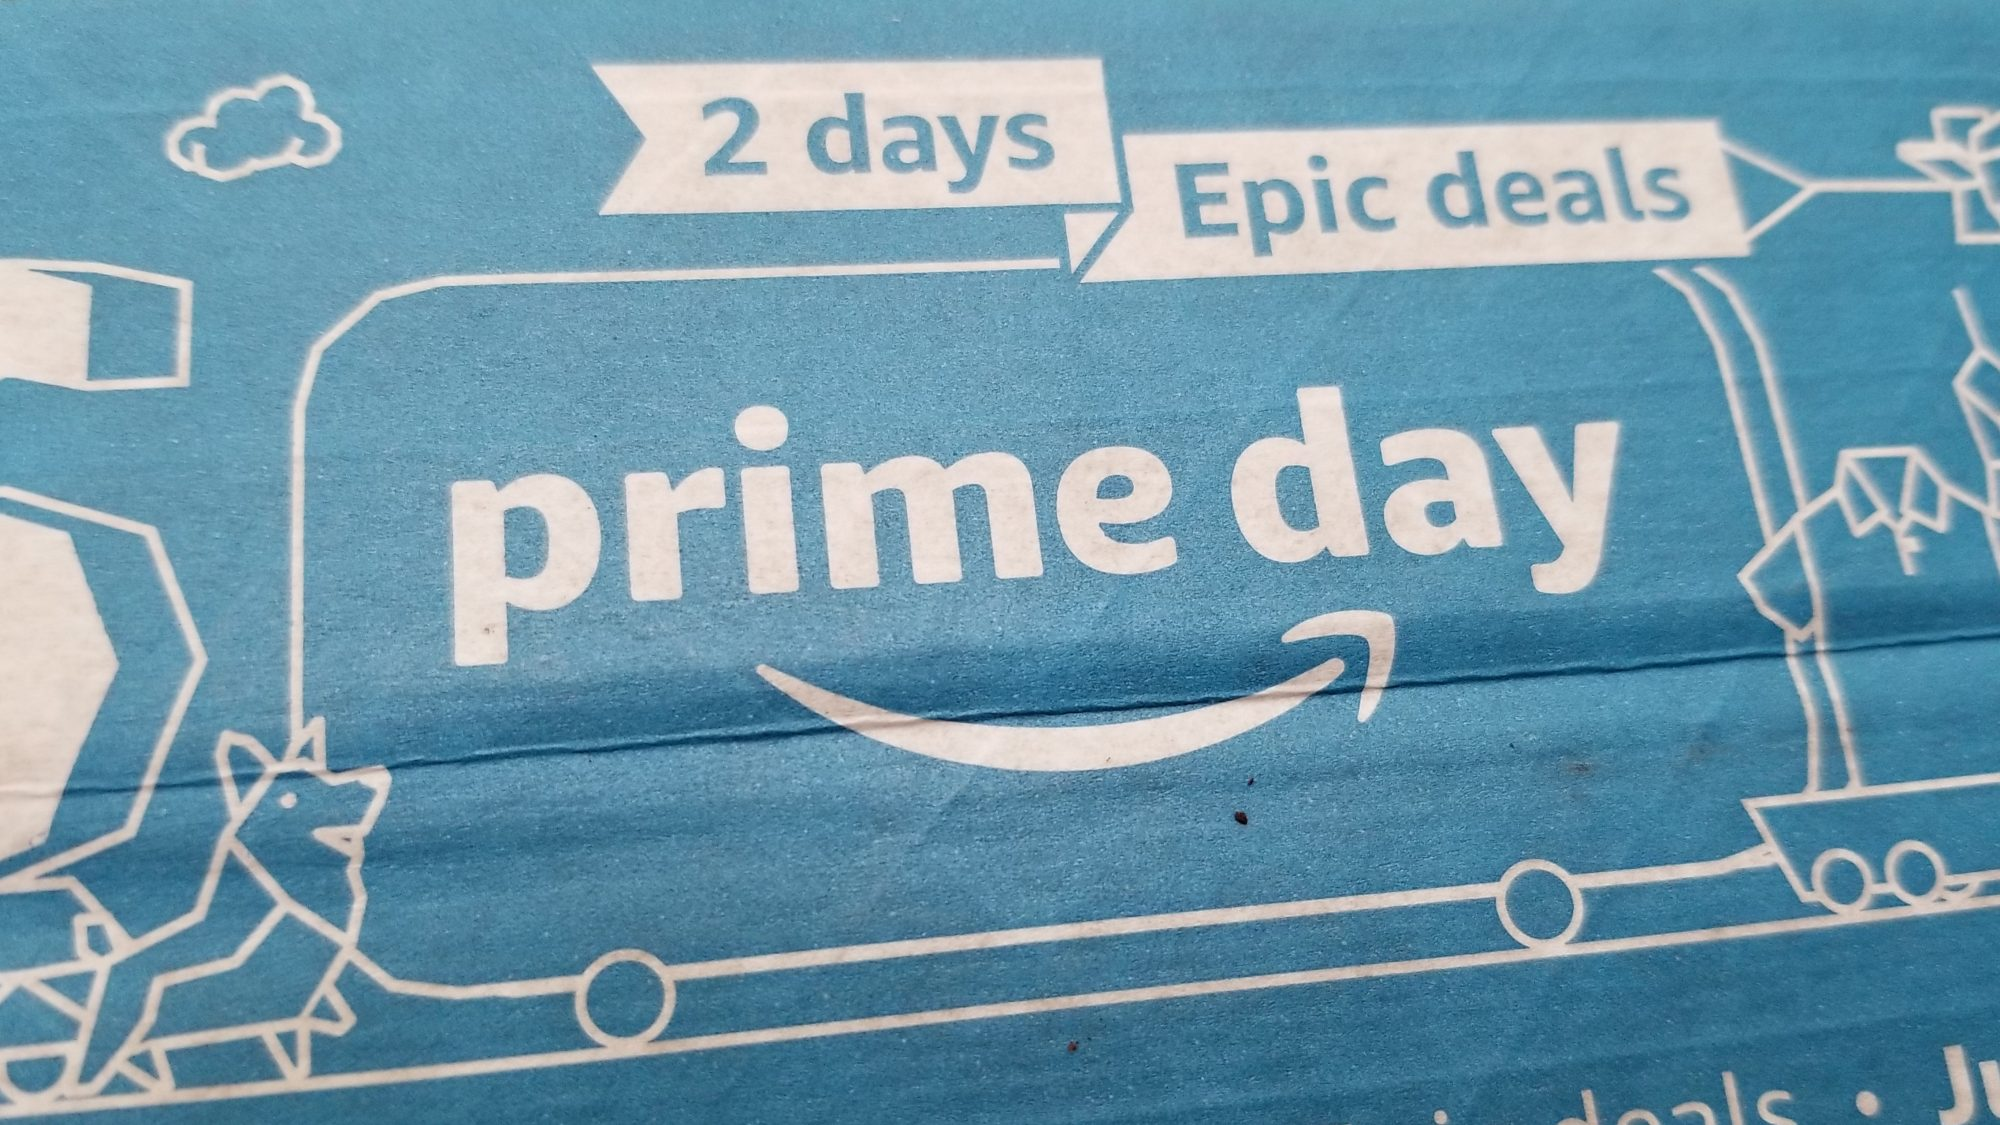 Amazon Prime Day 2020 Date, Time, Deals, How Prime Day works, and more - Prime Day box